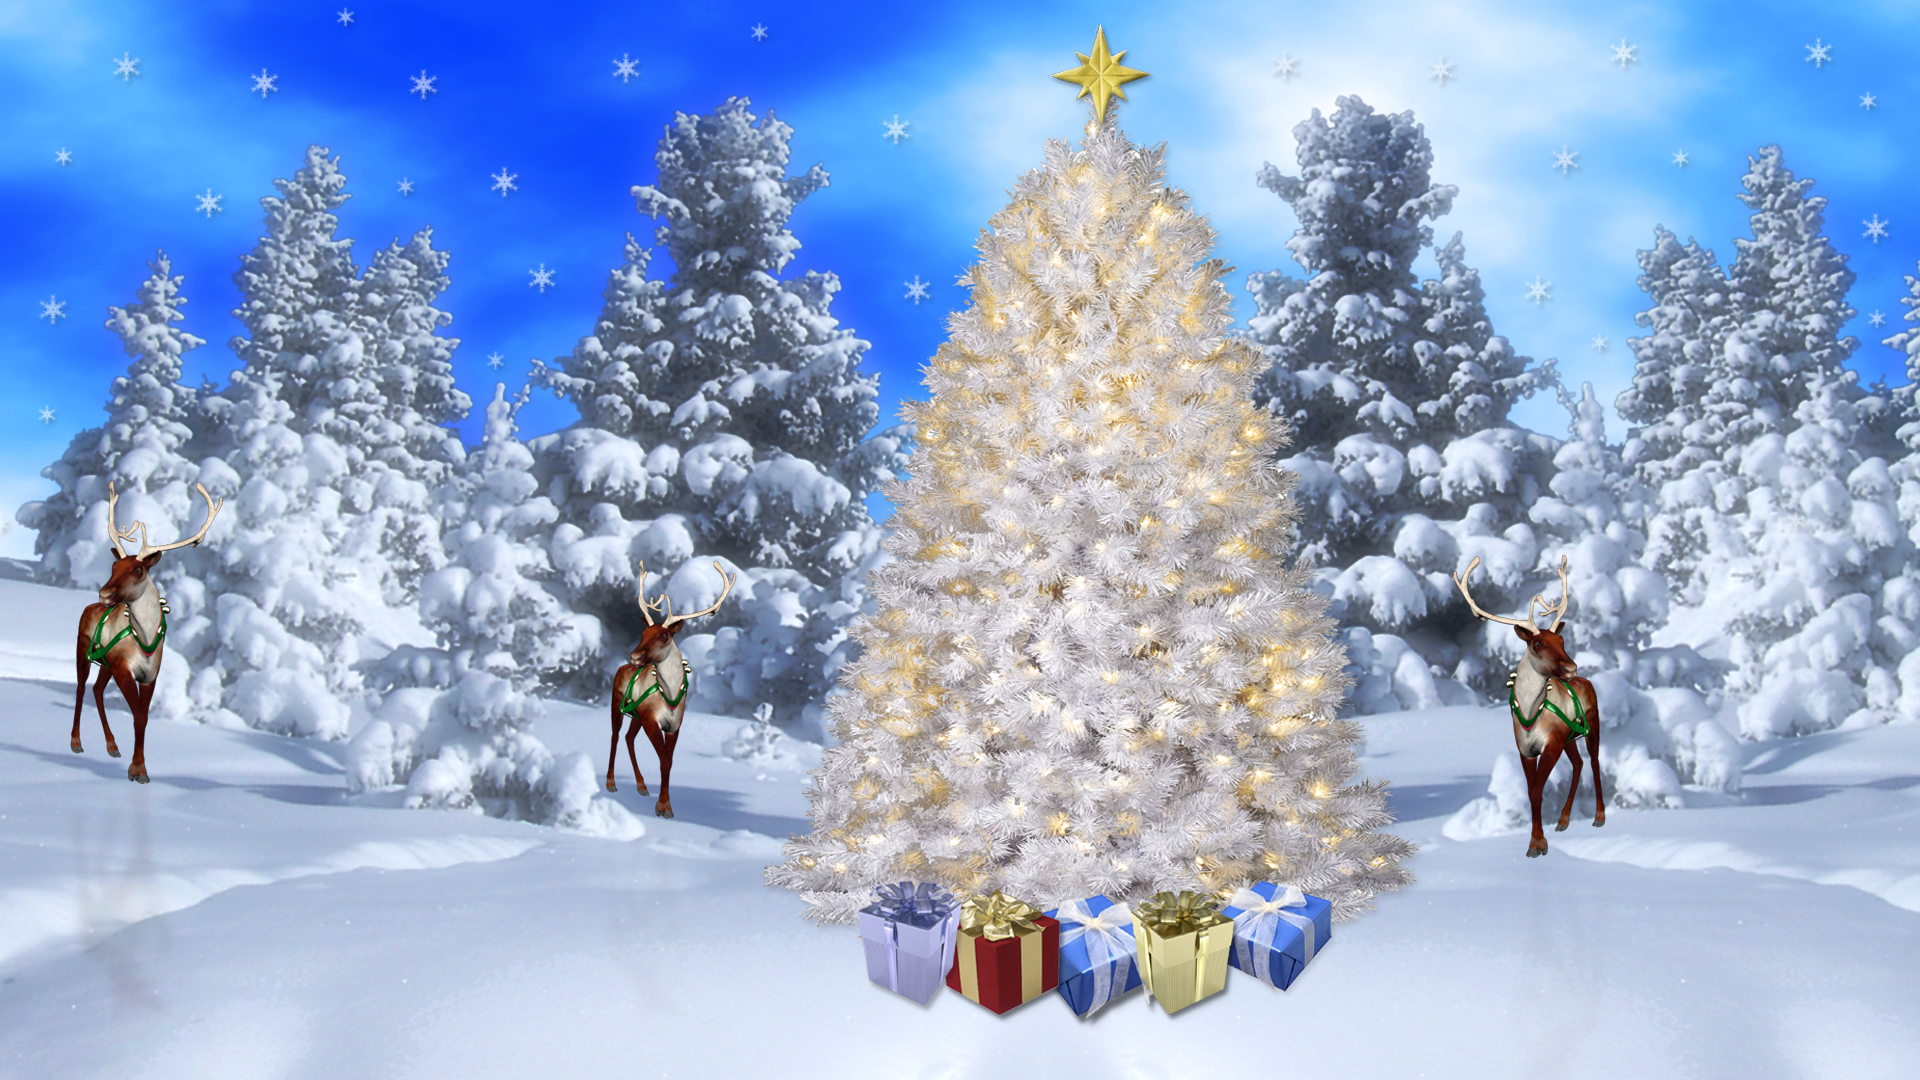 wallpapers, screensavers, explore, christmas, white, wilderness